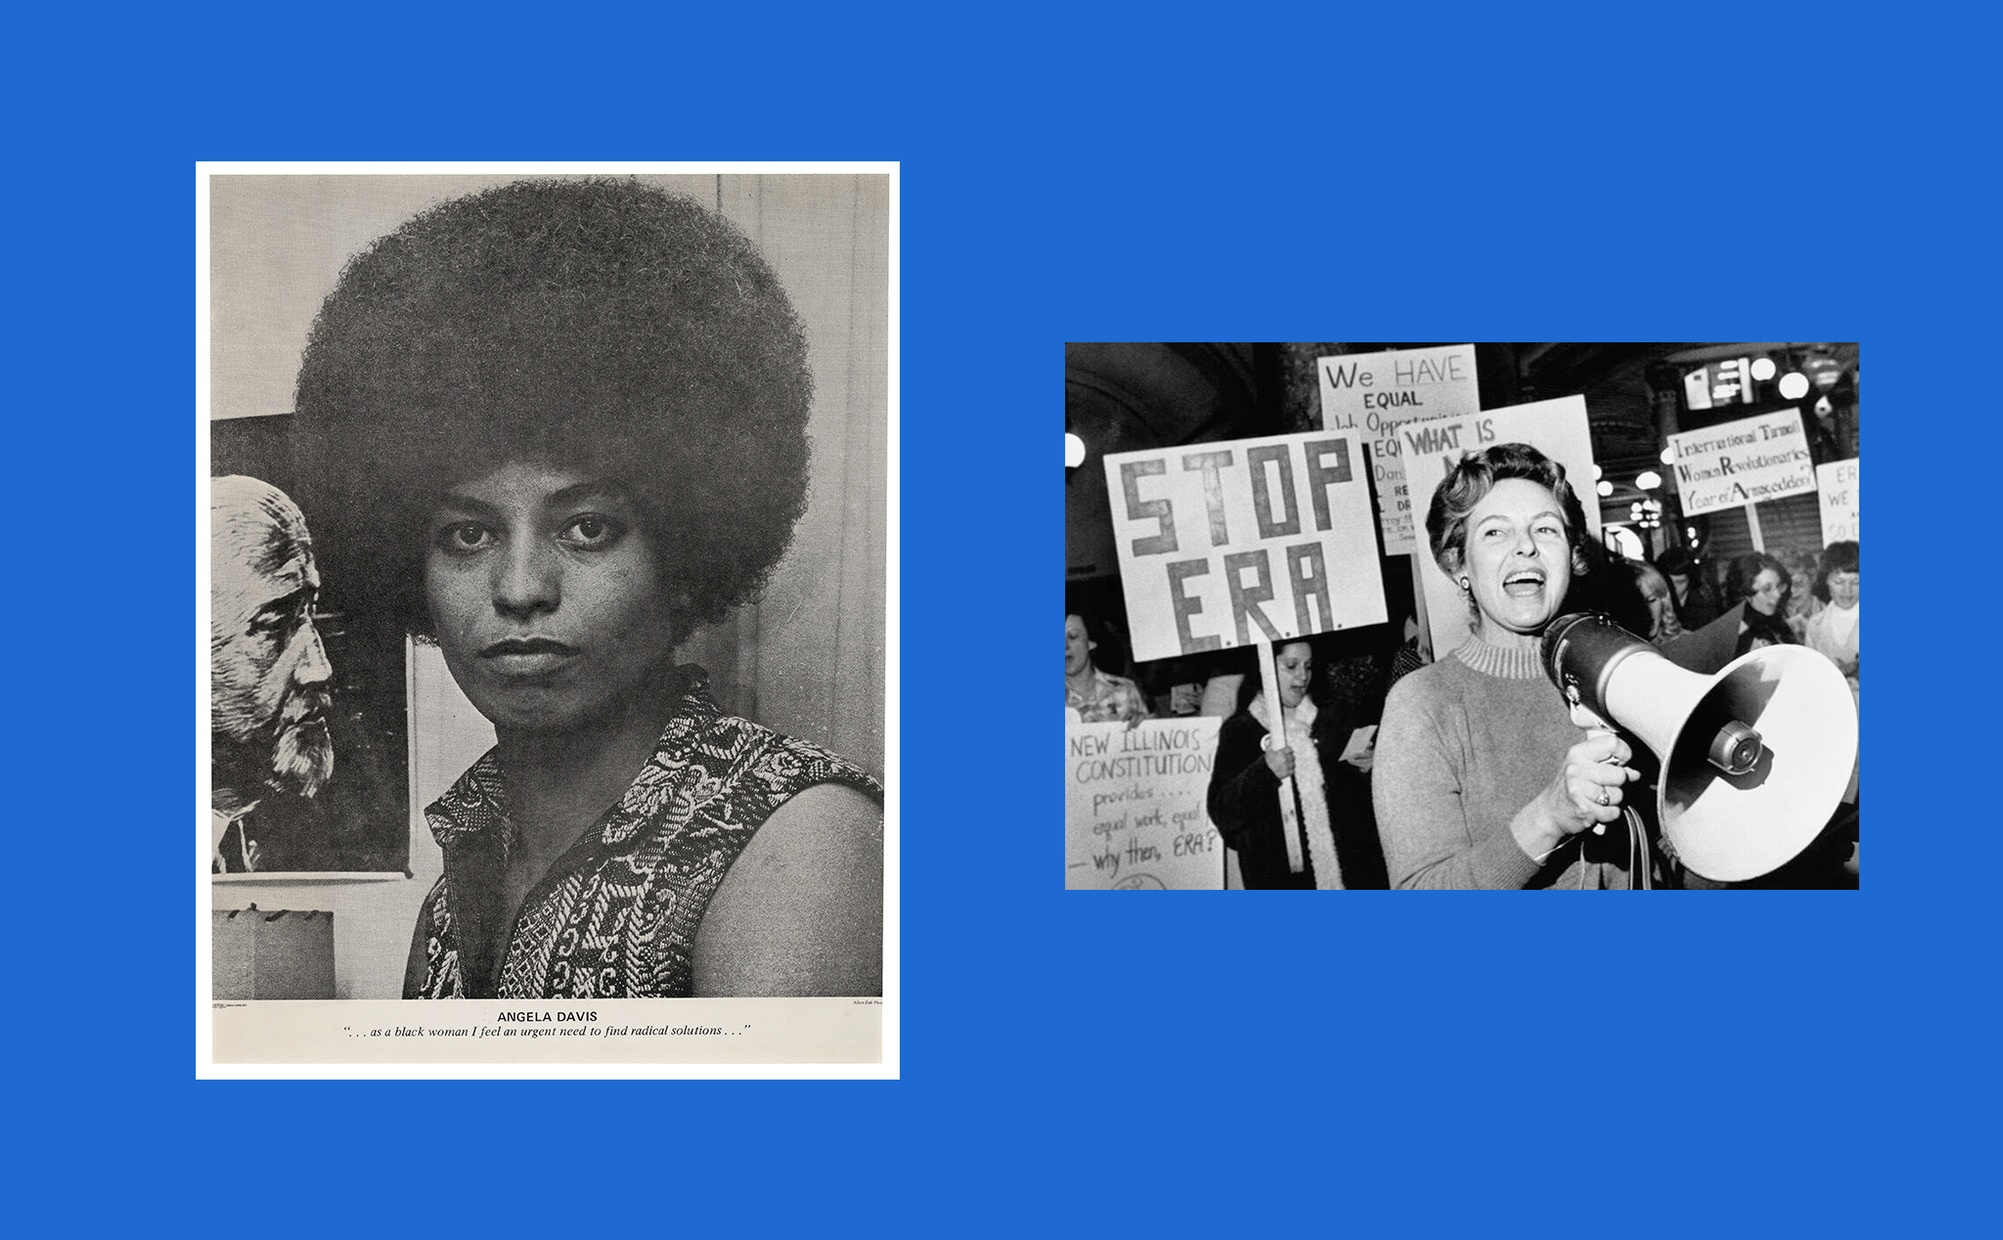 Two images side by side, one image is a black and white photo portrait on newsprint paper of a dark-skinned woman looking directly at the camera, and the other image is a black and white photograph of a group of light-skinned women holding protest signs behind a light-skinned woman speaking into a megaphone.